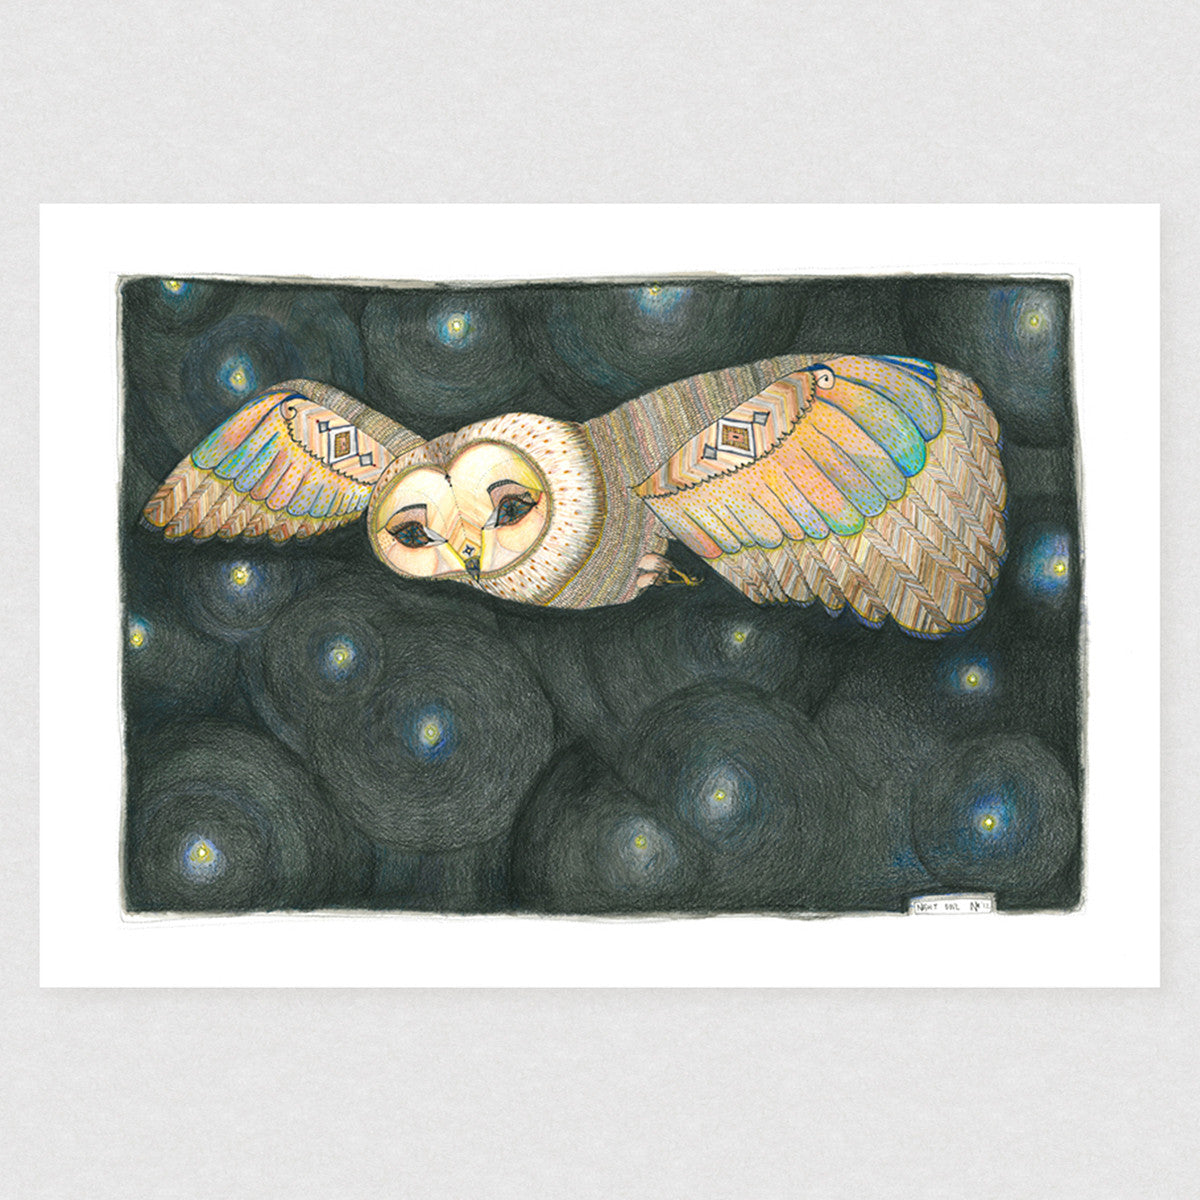 Night Owl - Limited Edition Print | by Natalie Martin - Unframed Prints - Throw Some Seeds - Australian gardening gifts and eco products online!